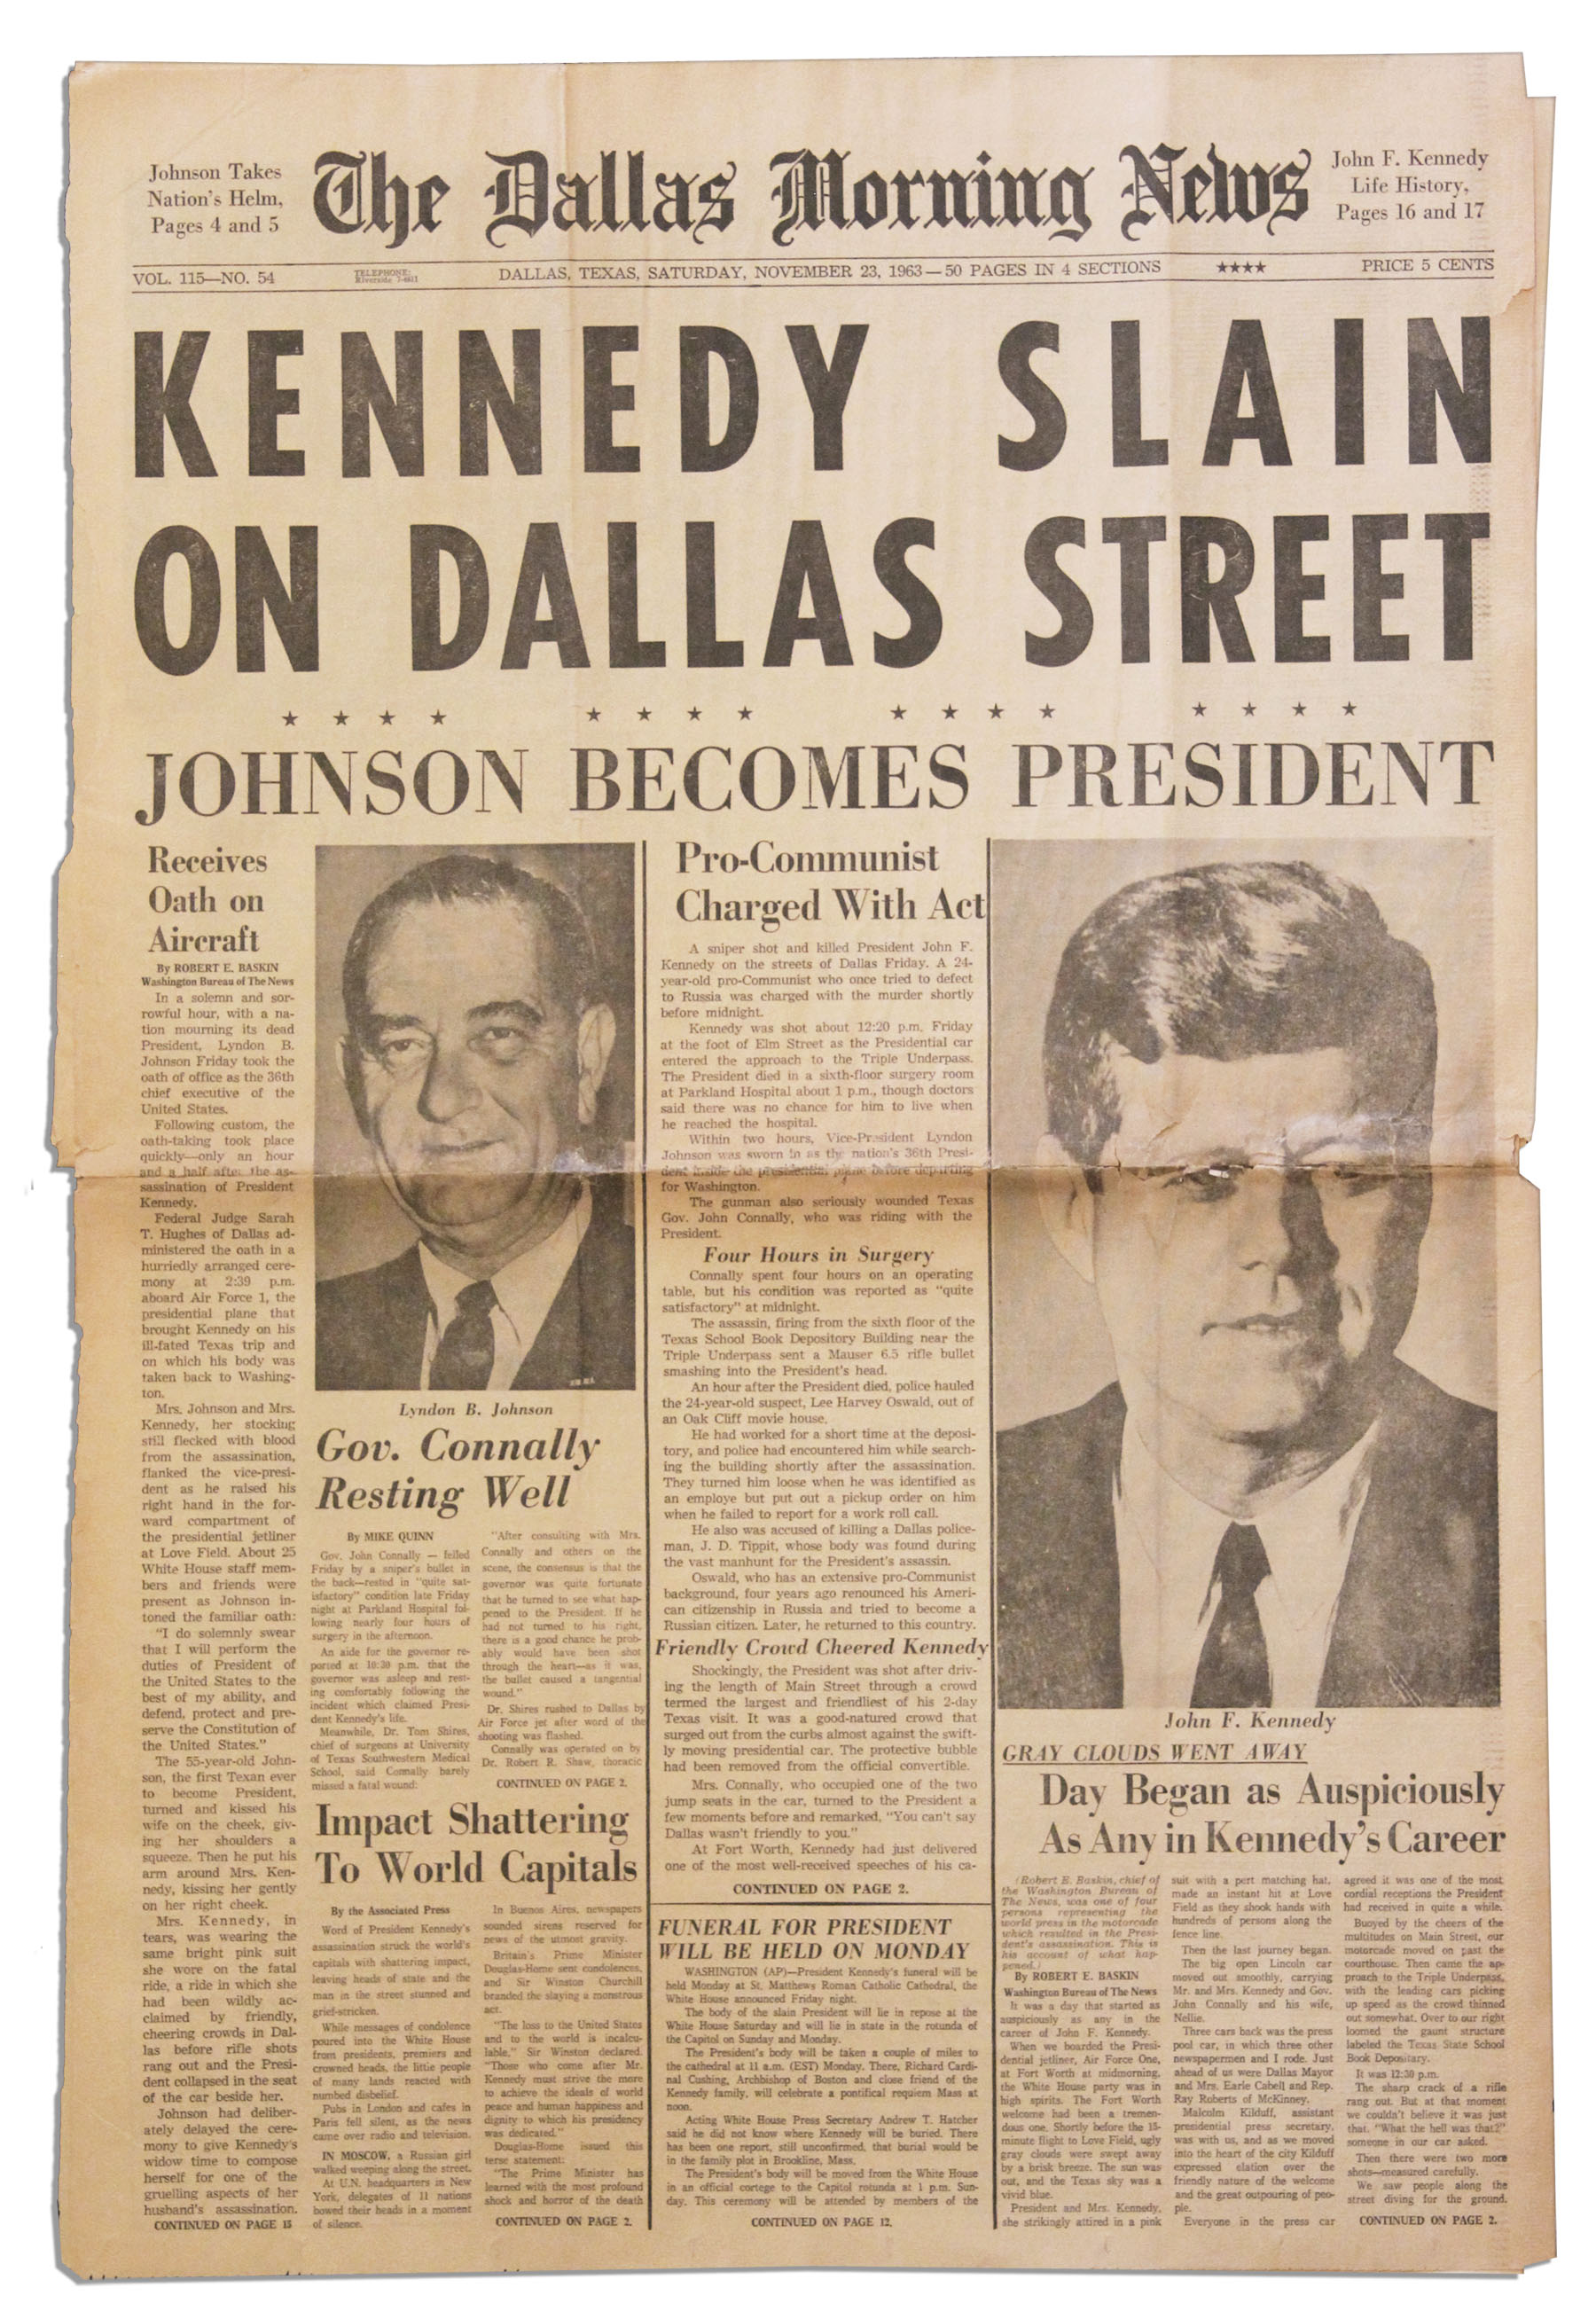 John f kennedy assassination conspiracy essay help